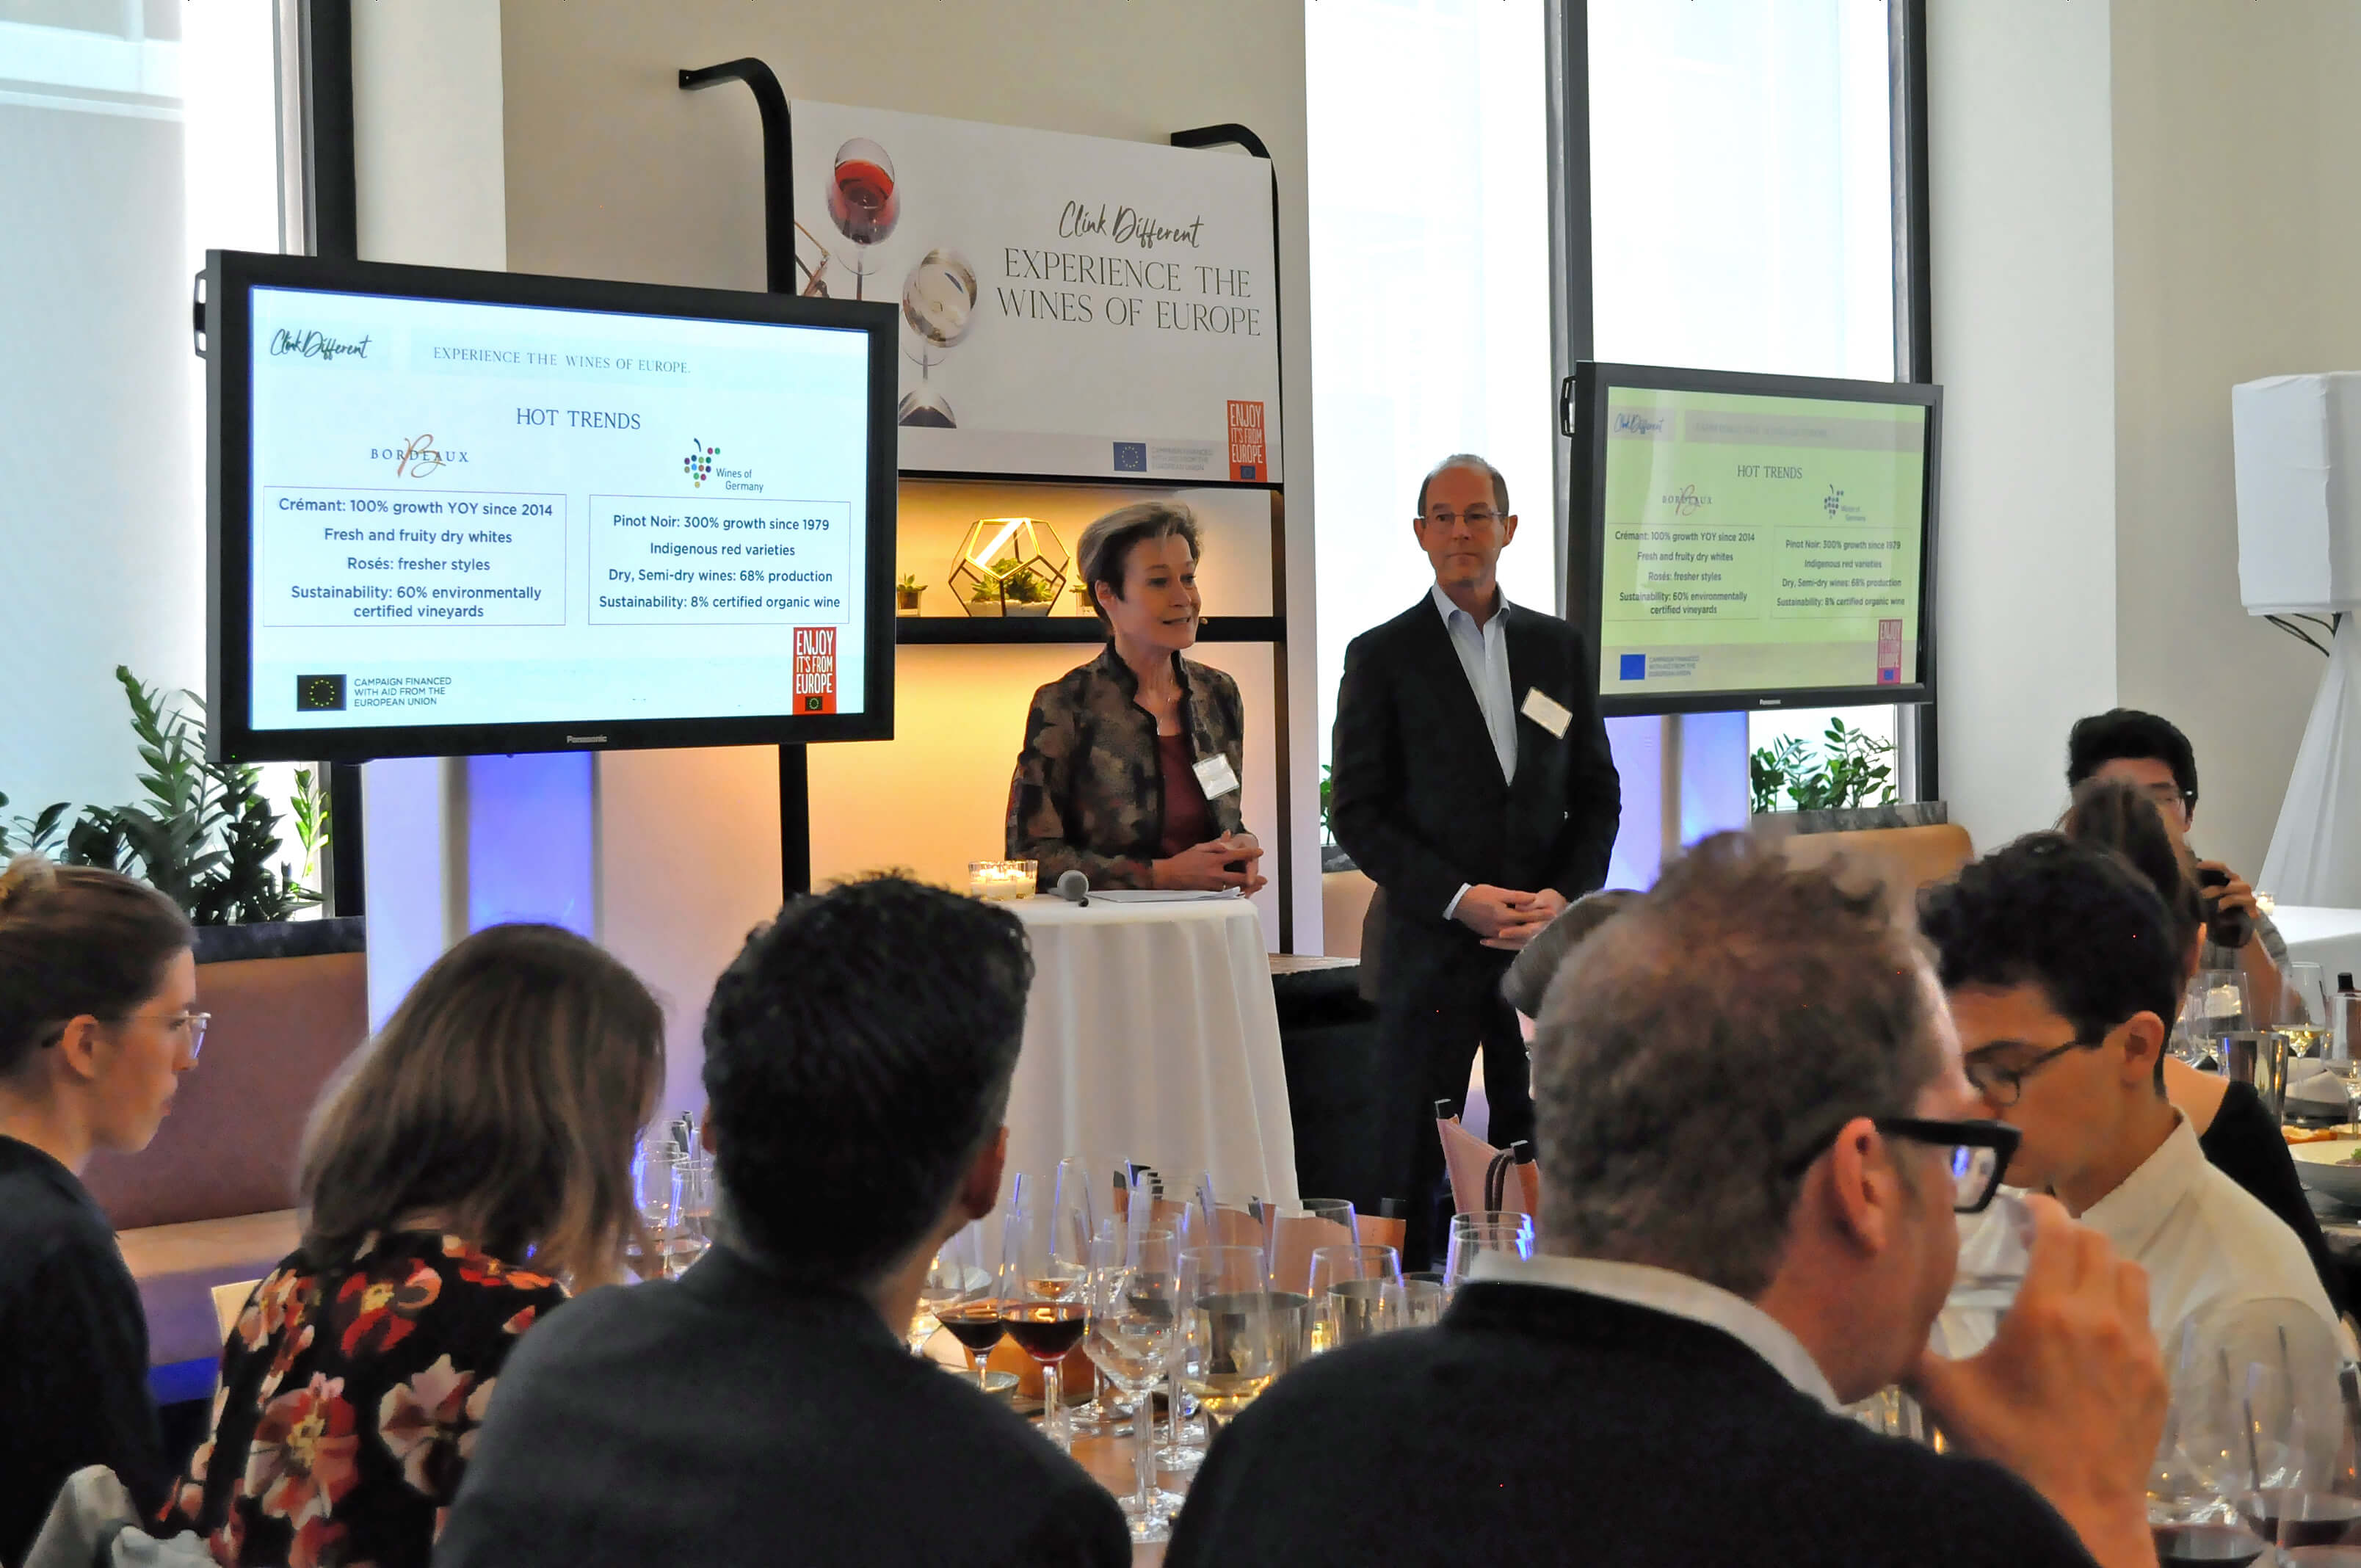 Monika Reule, Managing Director of the German Wine Institute, and Allan Sichel, President of the Bordeaux Wine Council announce joint marketing program